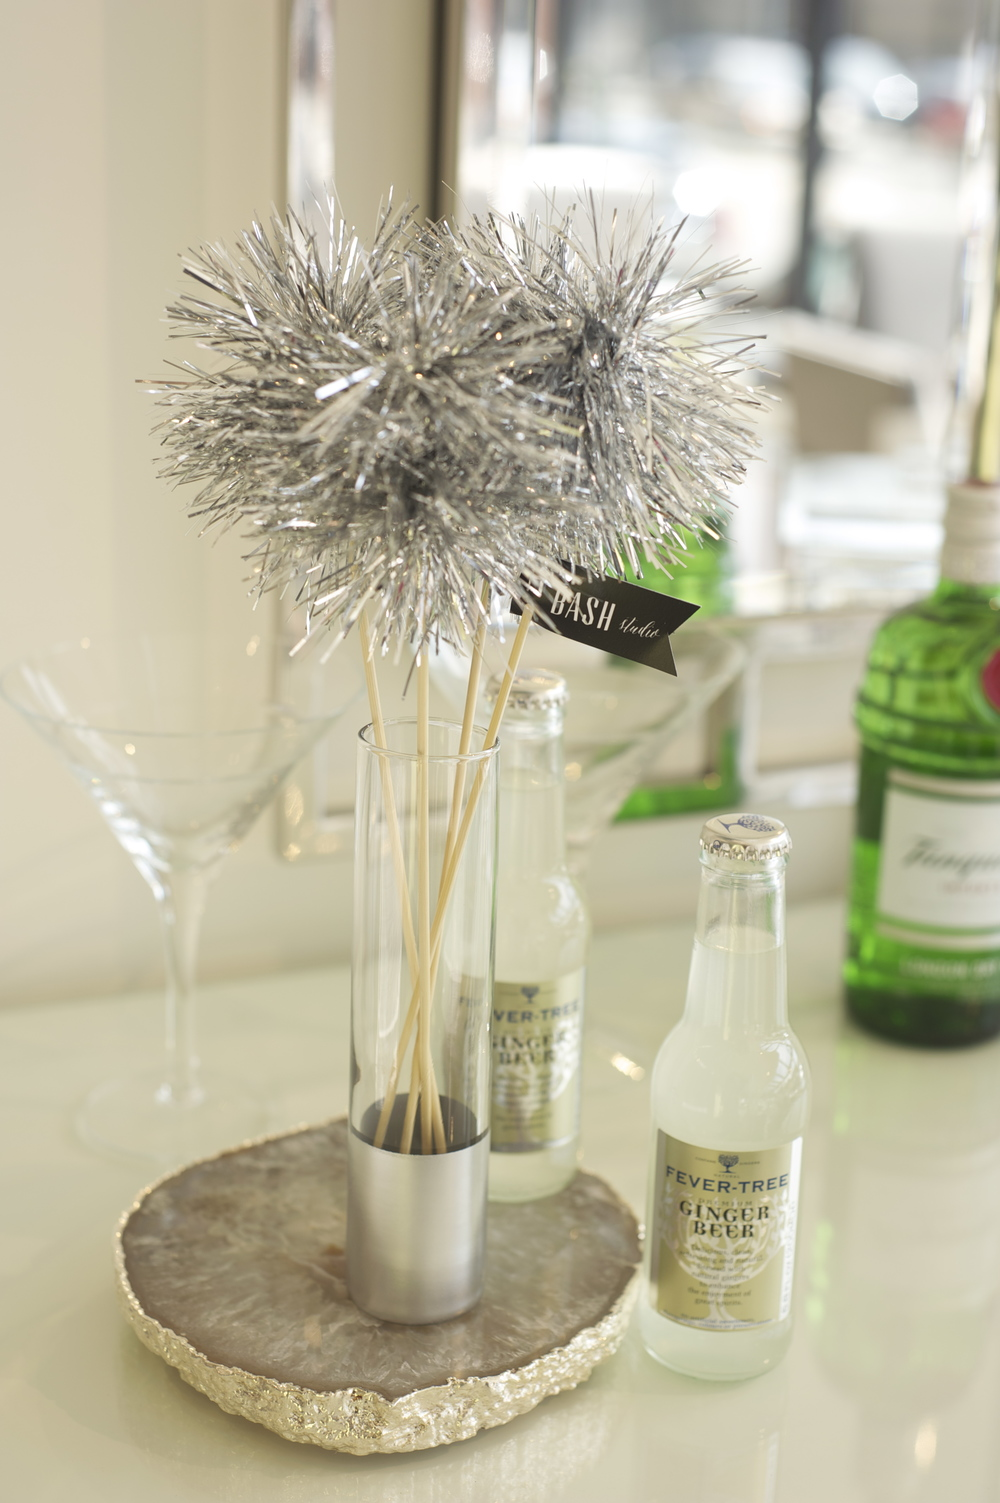 We created simple tall glass vessels for the drink stirrers that looked like they were dipped in silver by simply taping off the top and spray painting the bottom.